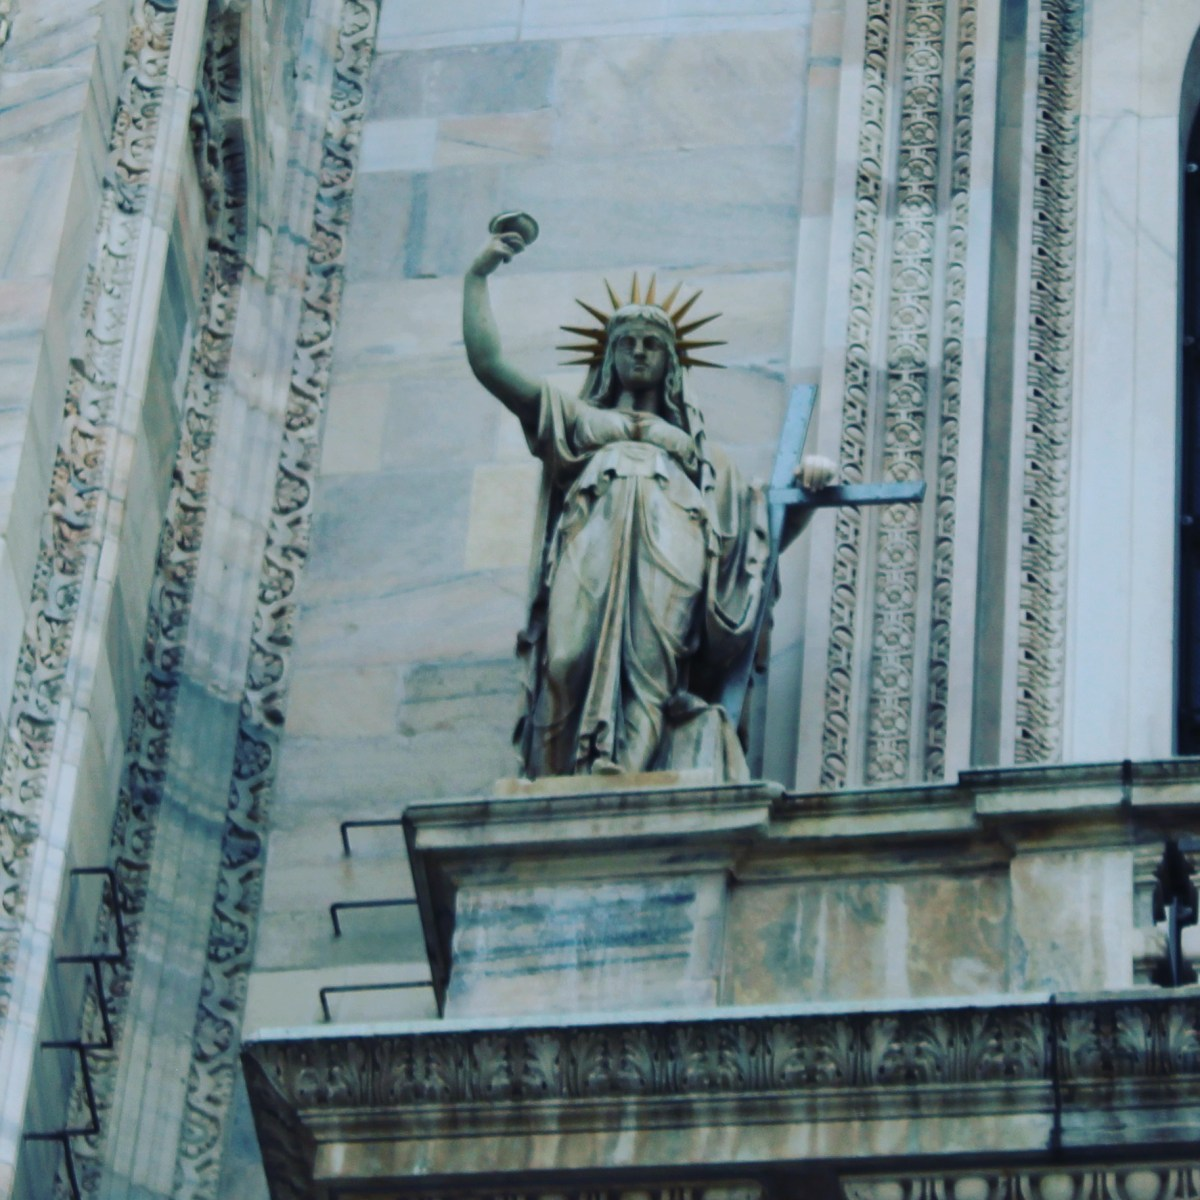 The Statue of Liberty is in Milan